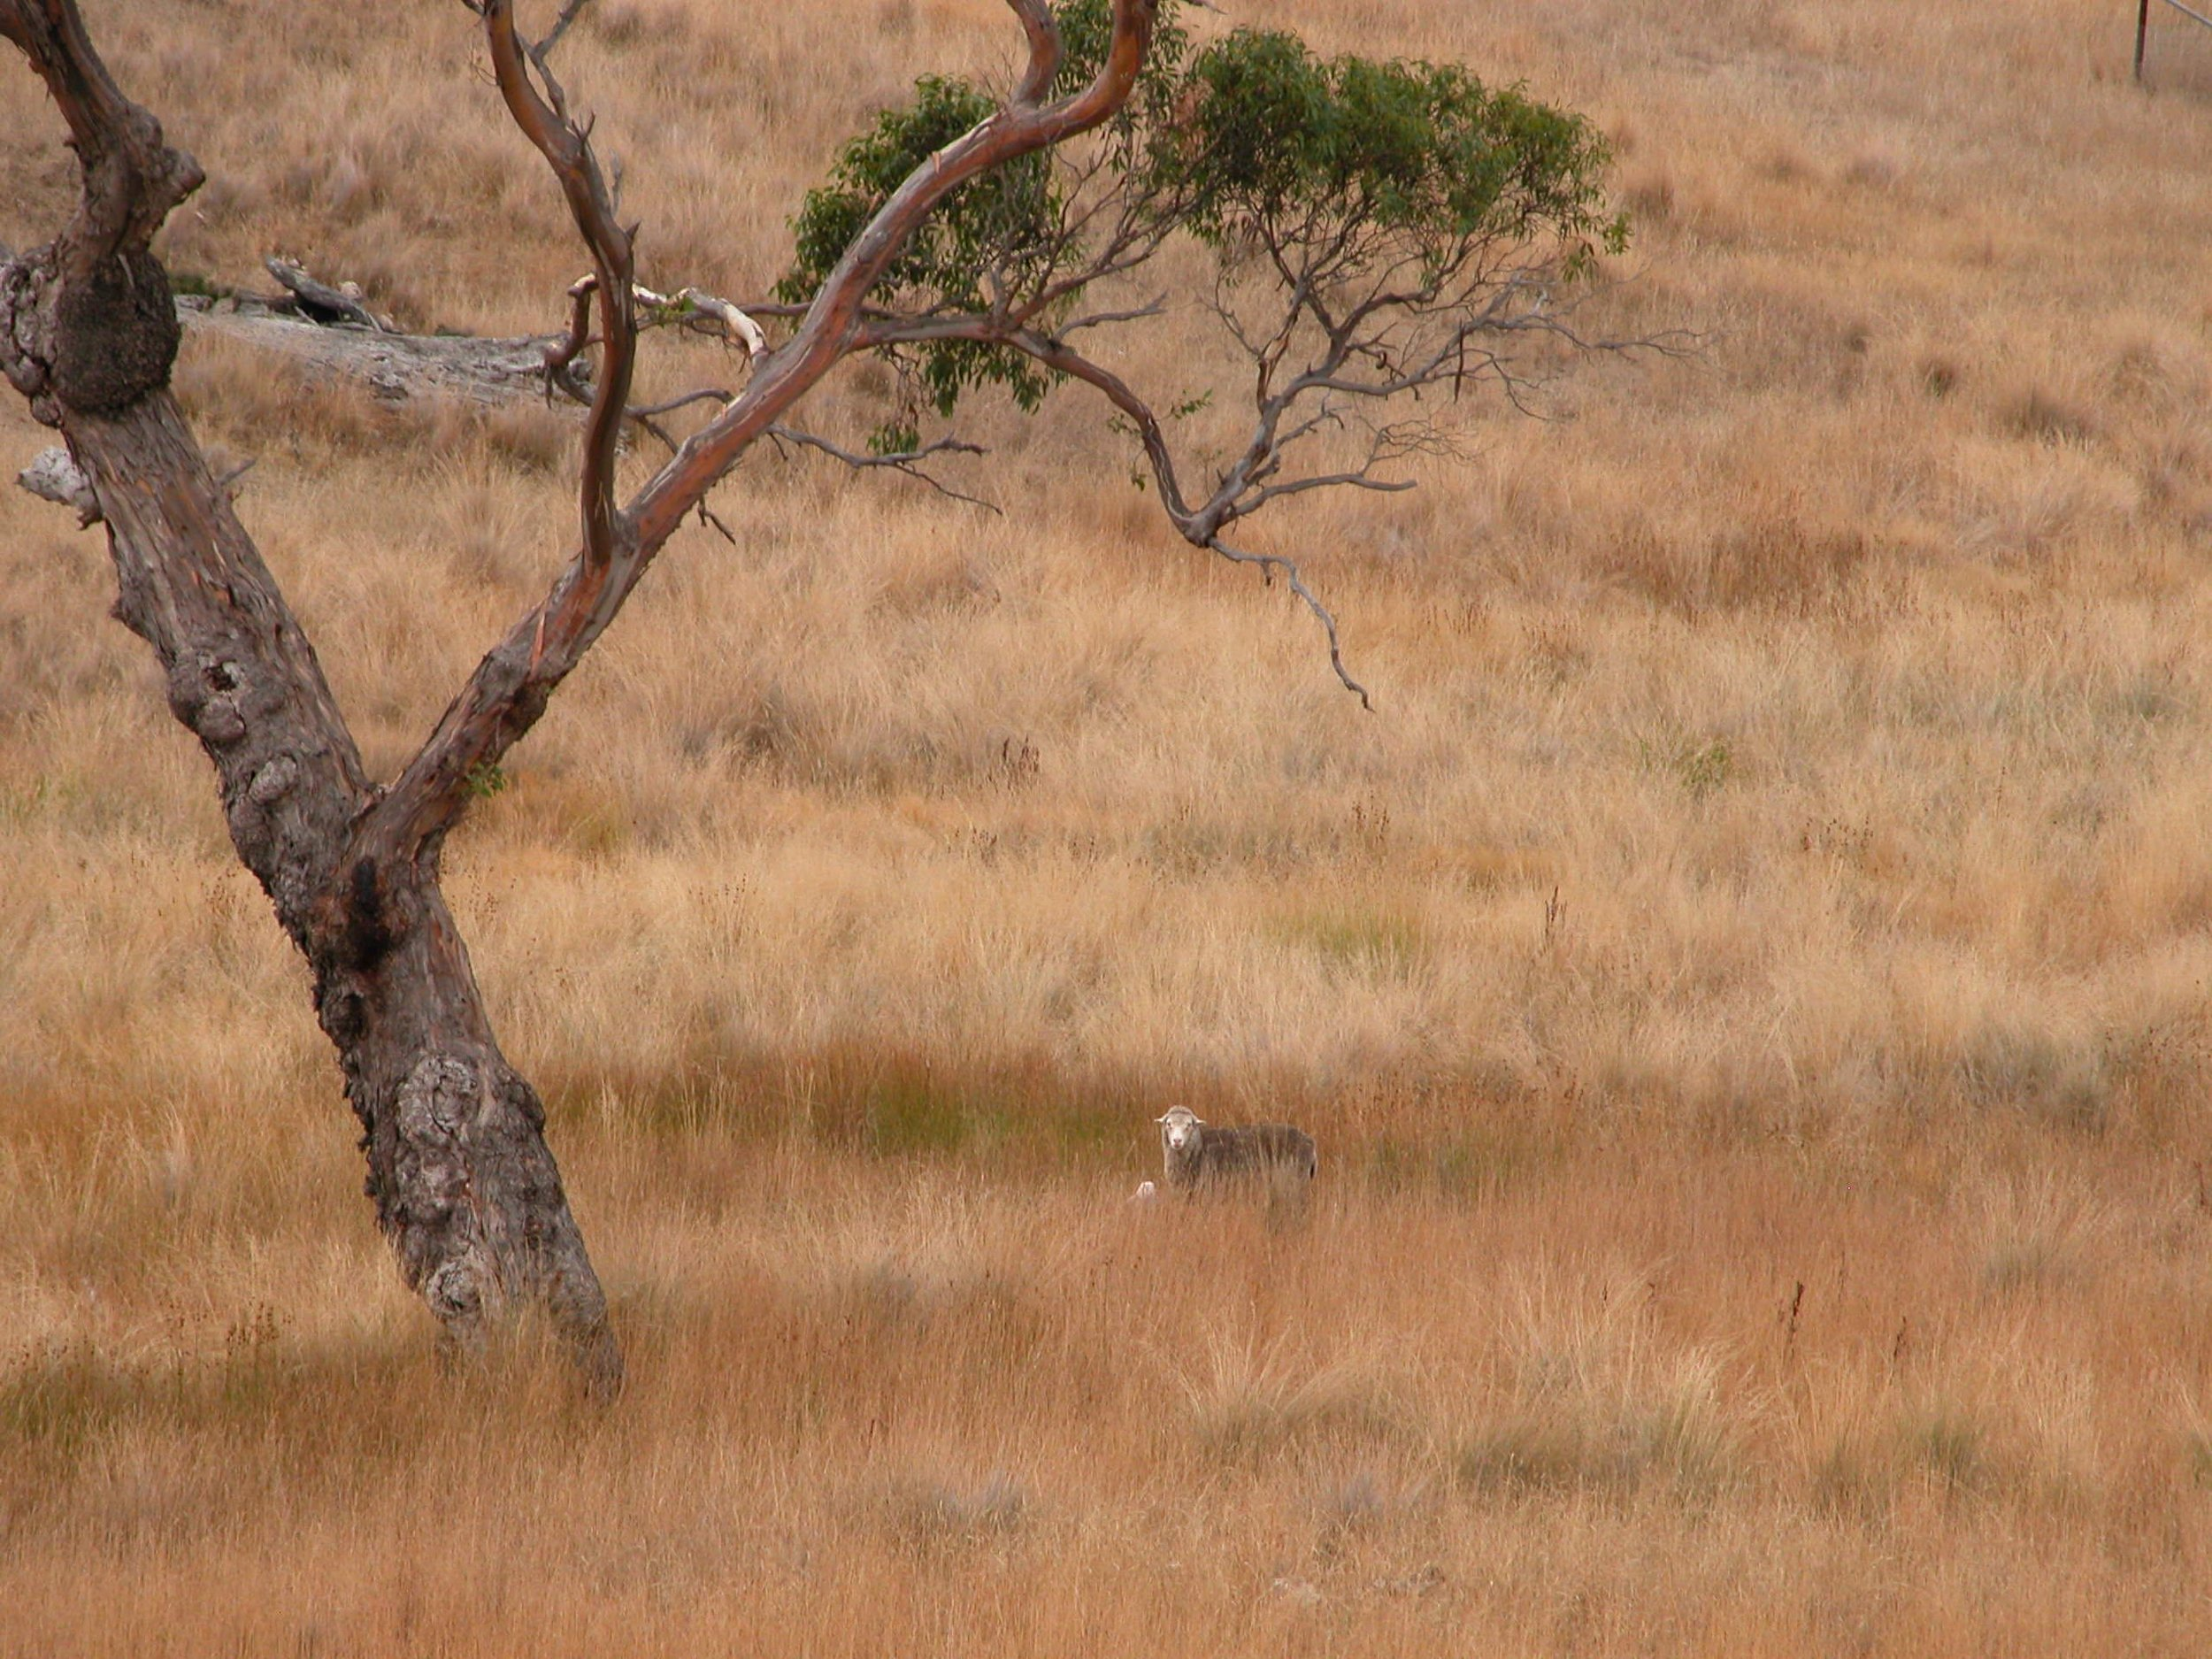 This ewe was tracking me from long telephoto range, in an arc of 180 degrees as I worked to get around her without disturbing her.